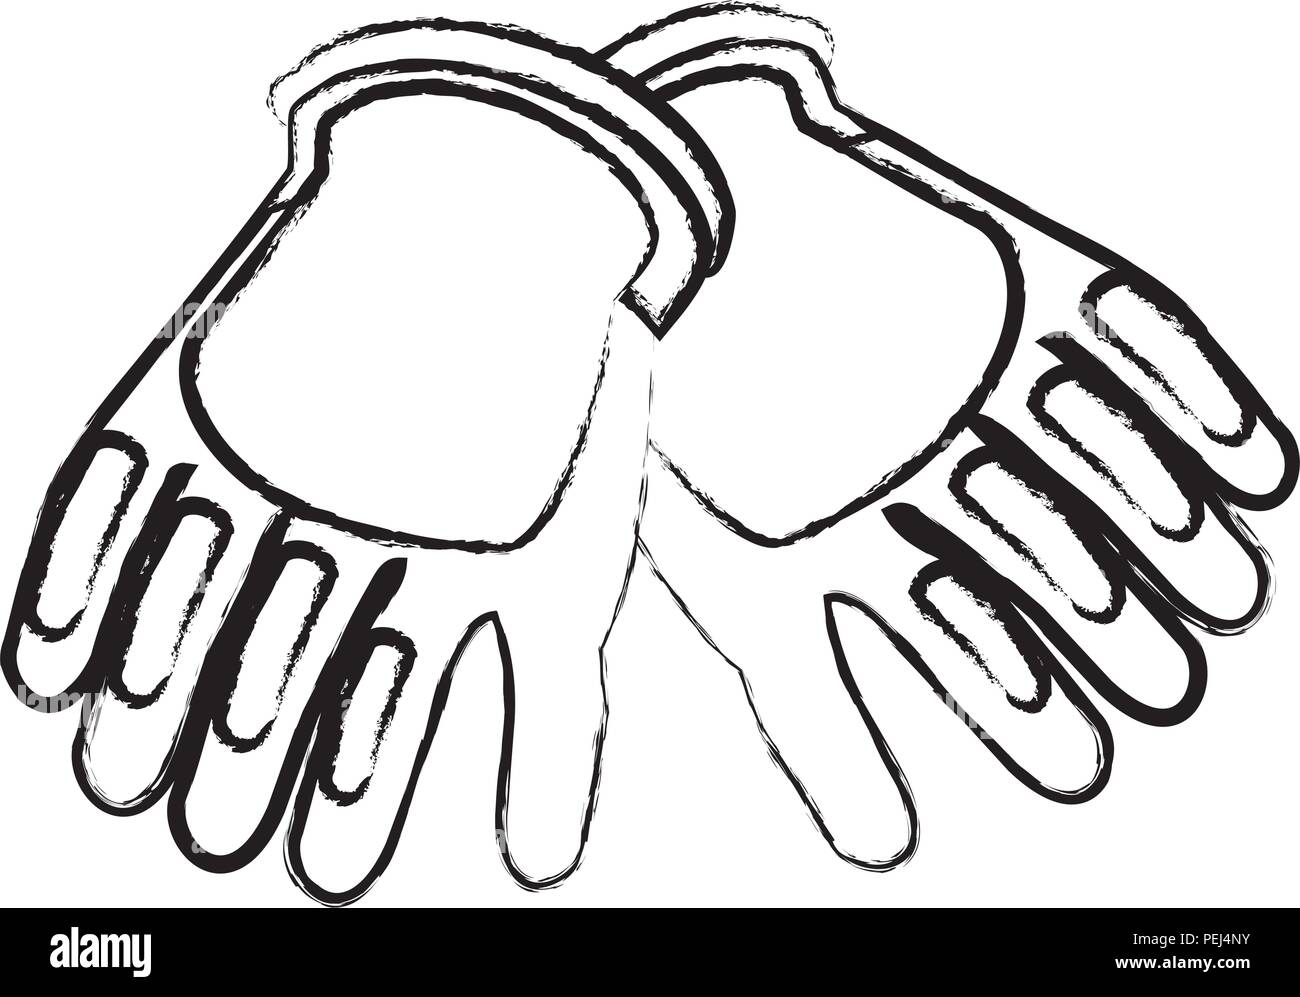 protective gloves stock vector images alamy PPE Storage construction gloves icon over white background vector illustration stock vector